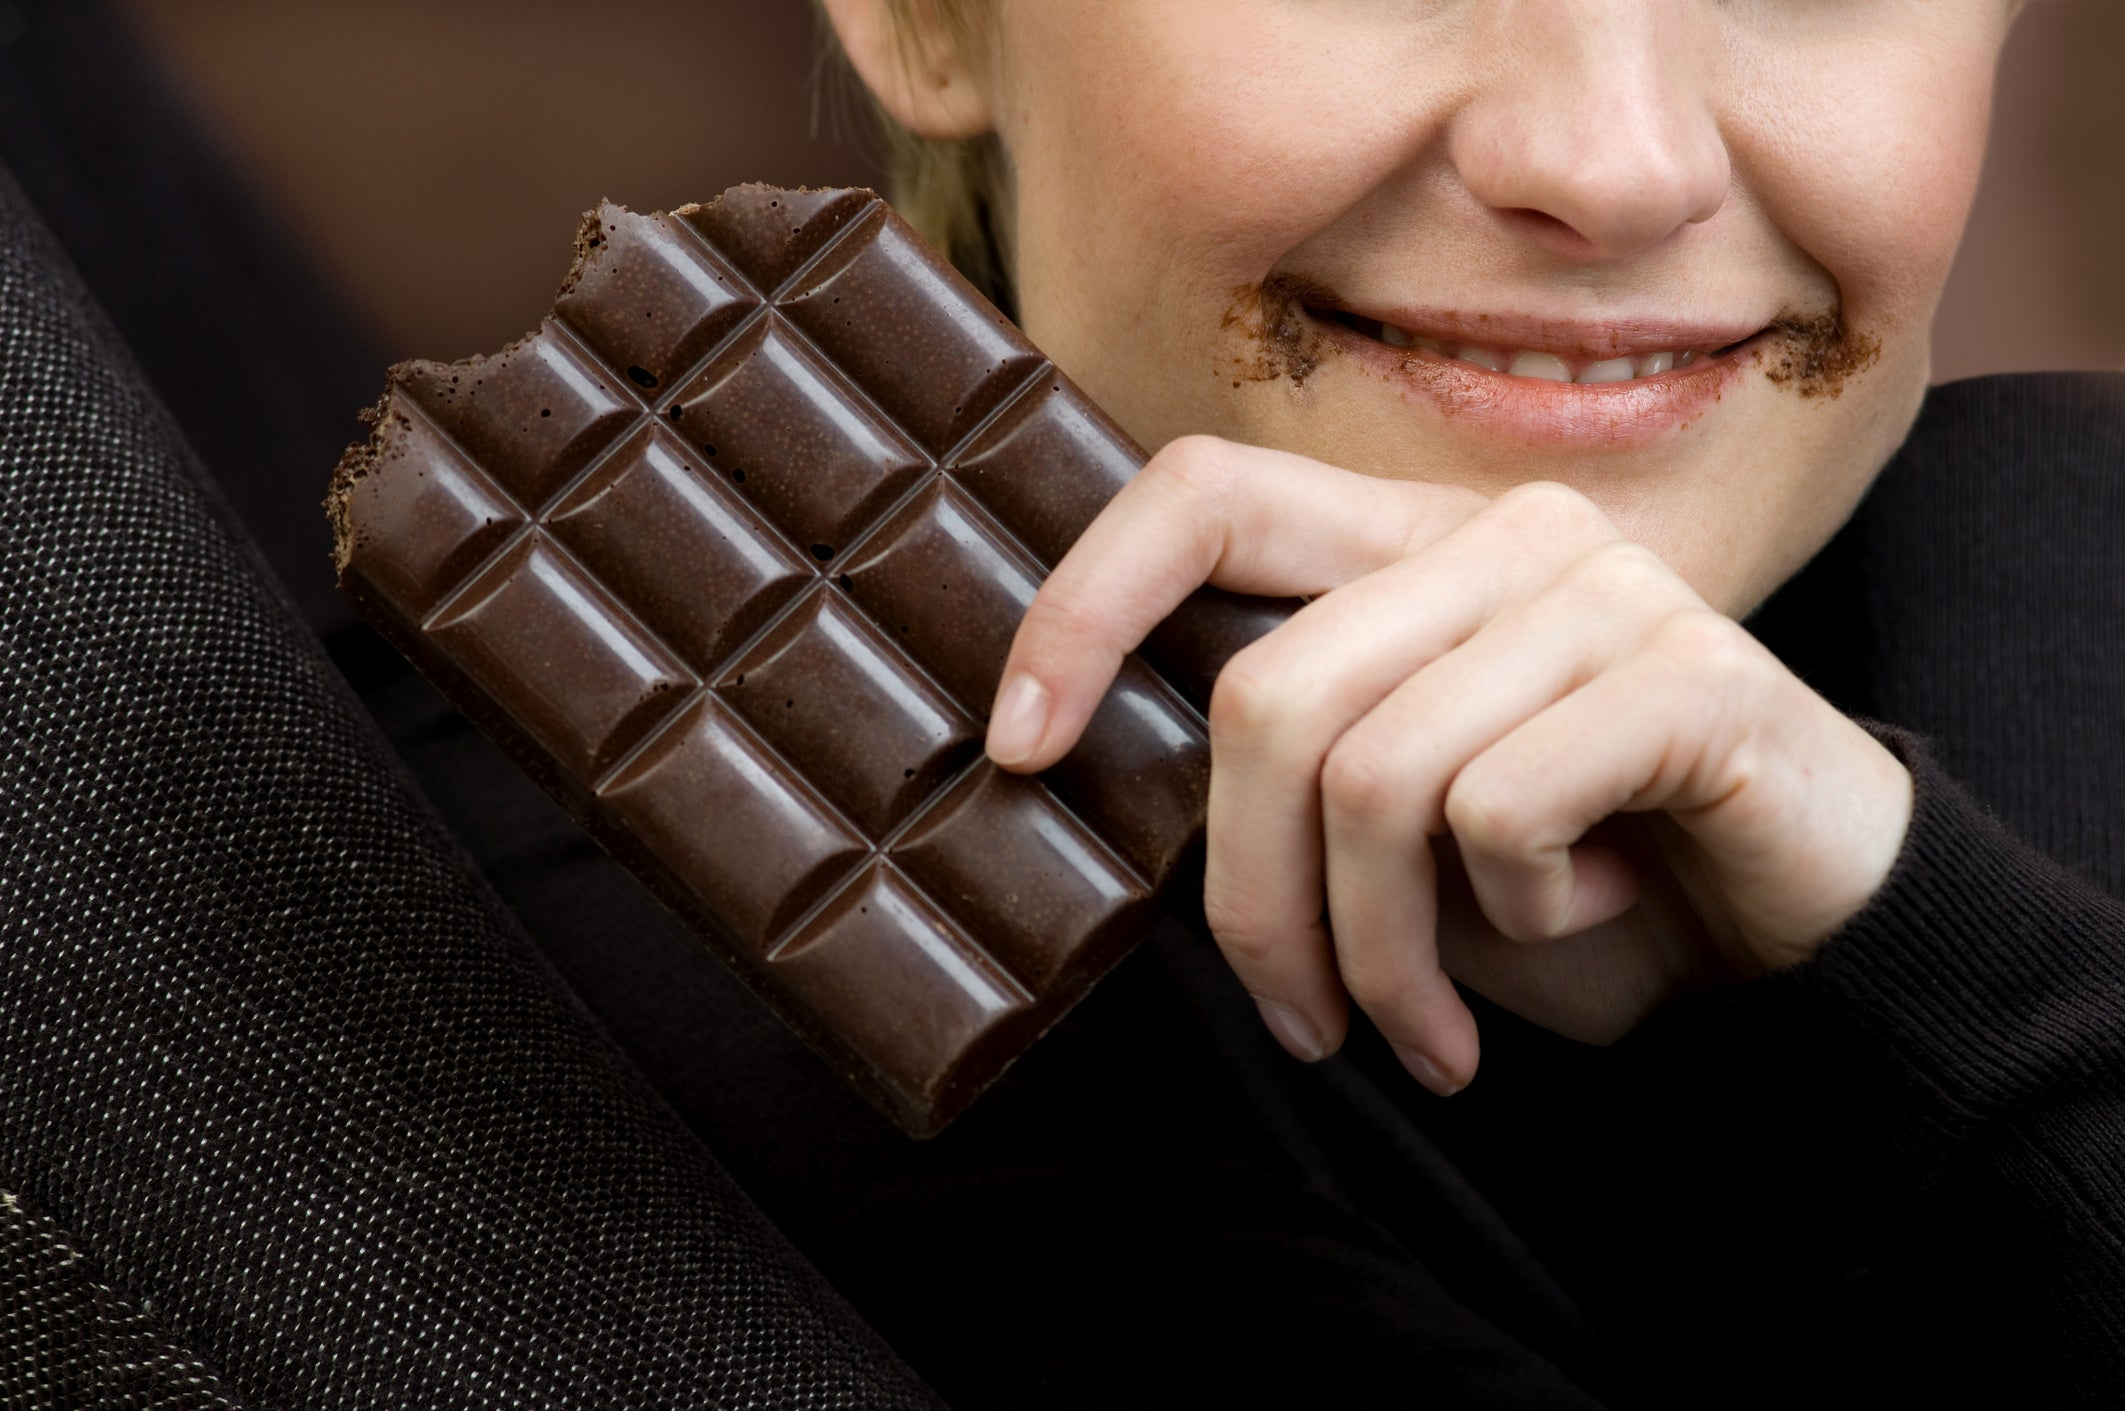 Eating three chocolate bars a month can reduce risk of heart failure, study claims thumbnail